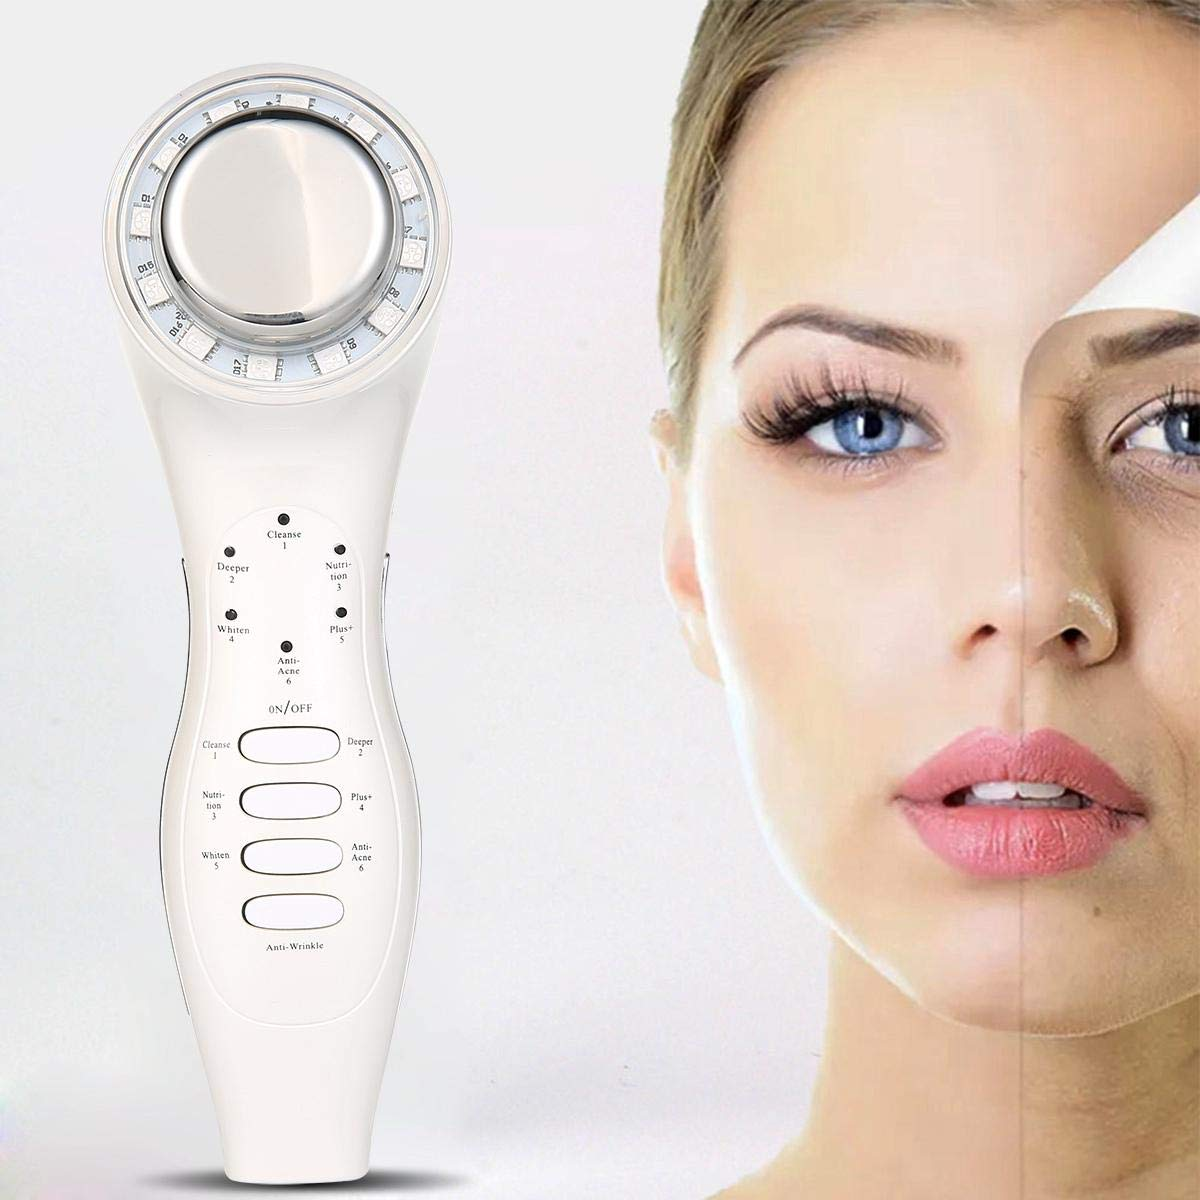 Hamkaw 5 IN 1 Skin Tightening Beauty MachineFace Massager, High Frequency Vibration Heating Iontophoresis Face Massager For Body And Face Skin Care, Cleanse, Smooth Fine Lines, And Tighten Skin